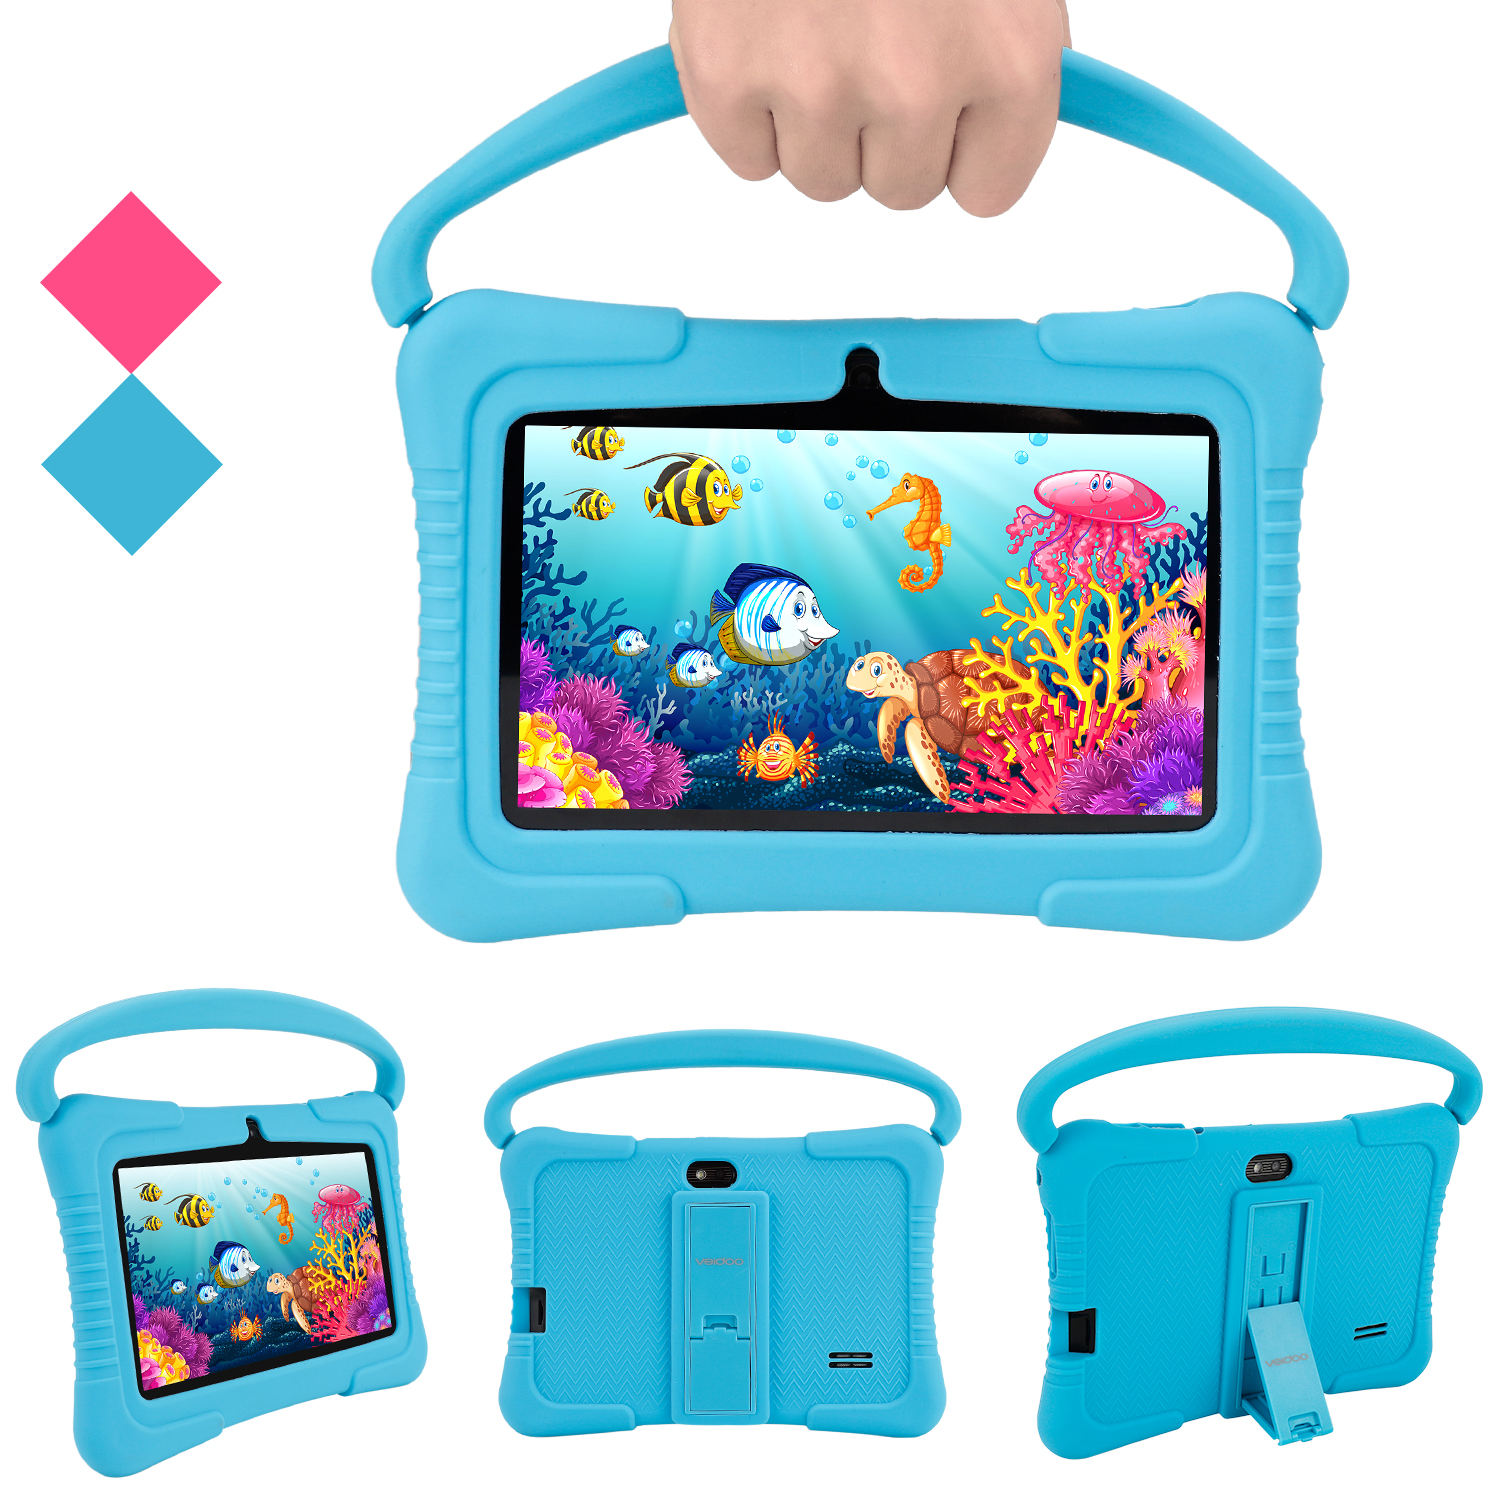 7 inch Kids Tablet HD Screen Educational APP Android 8.1 Tab PC for Children Silicon Case